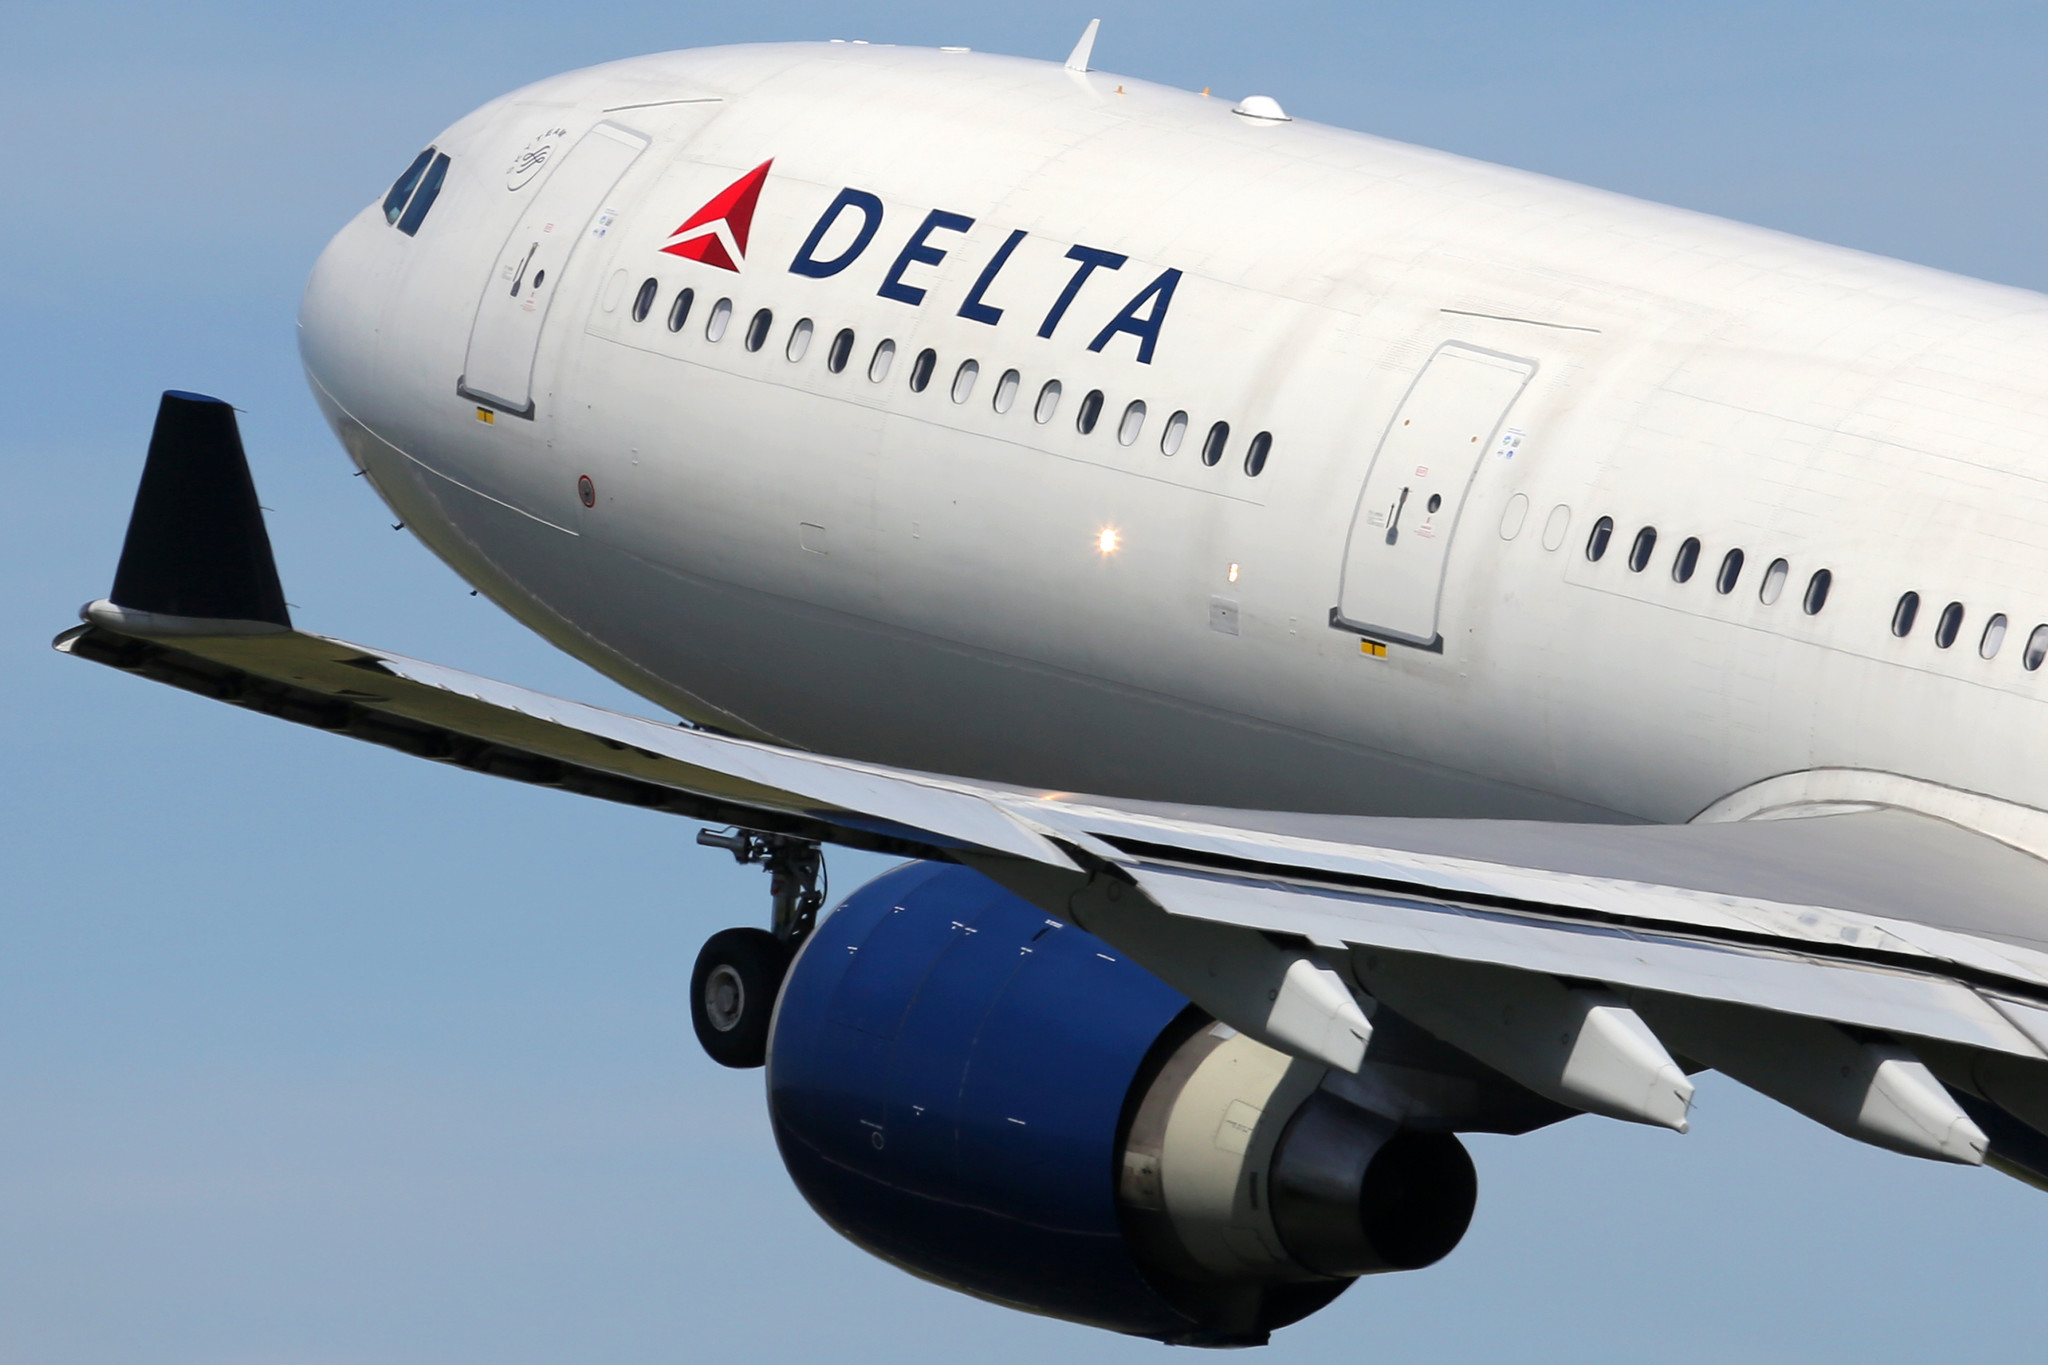 Delta fined $50,000 for kicking 3 Muslim passengers off flights